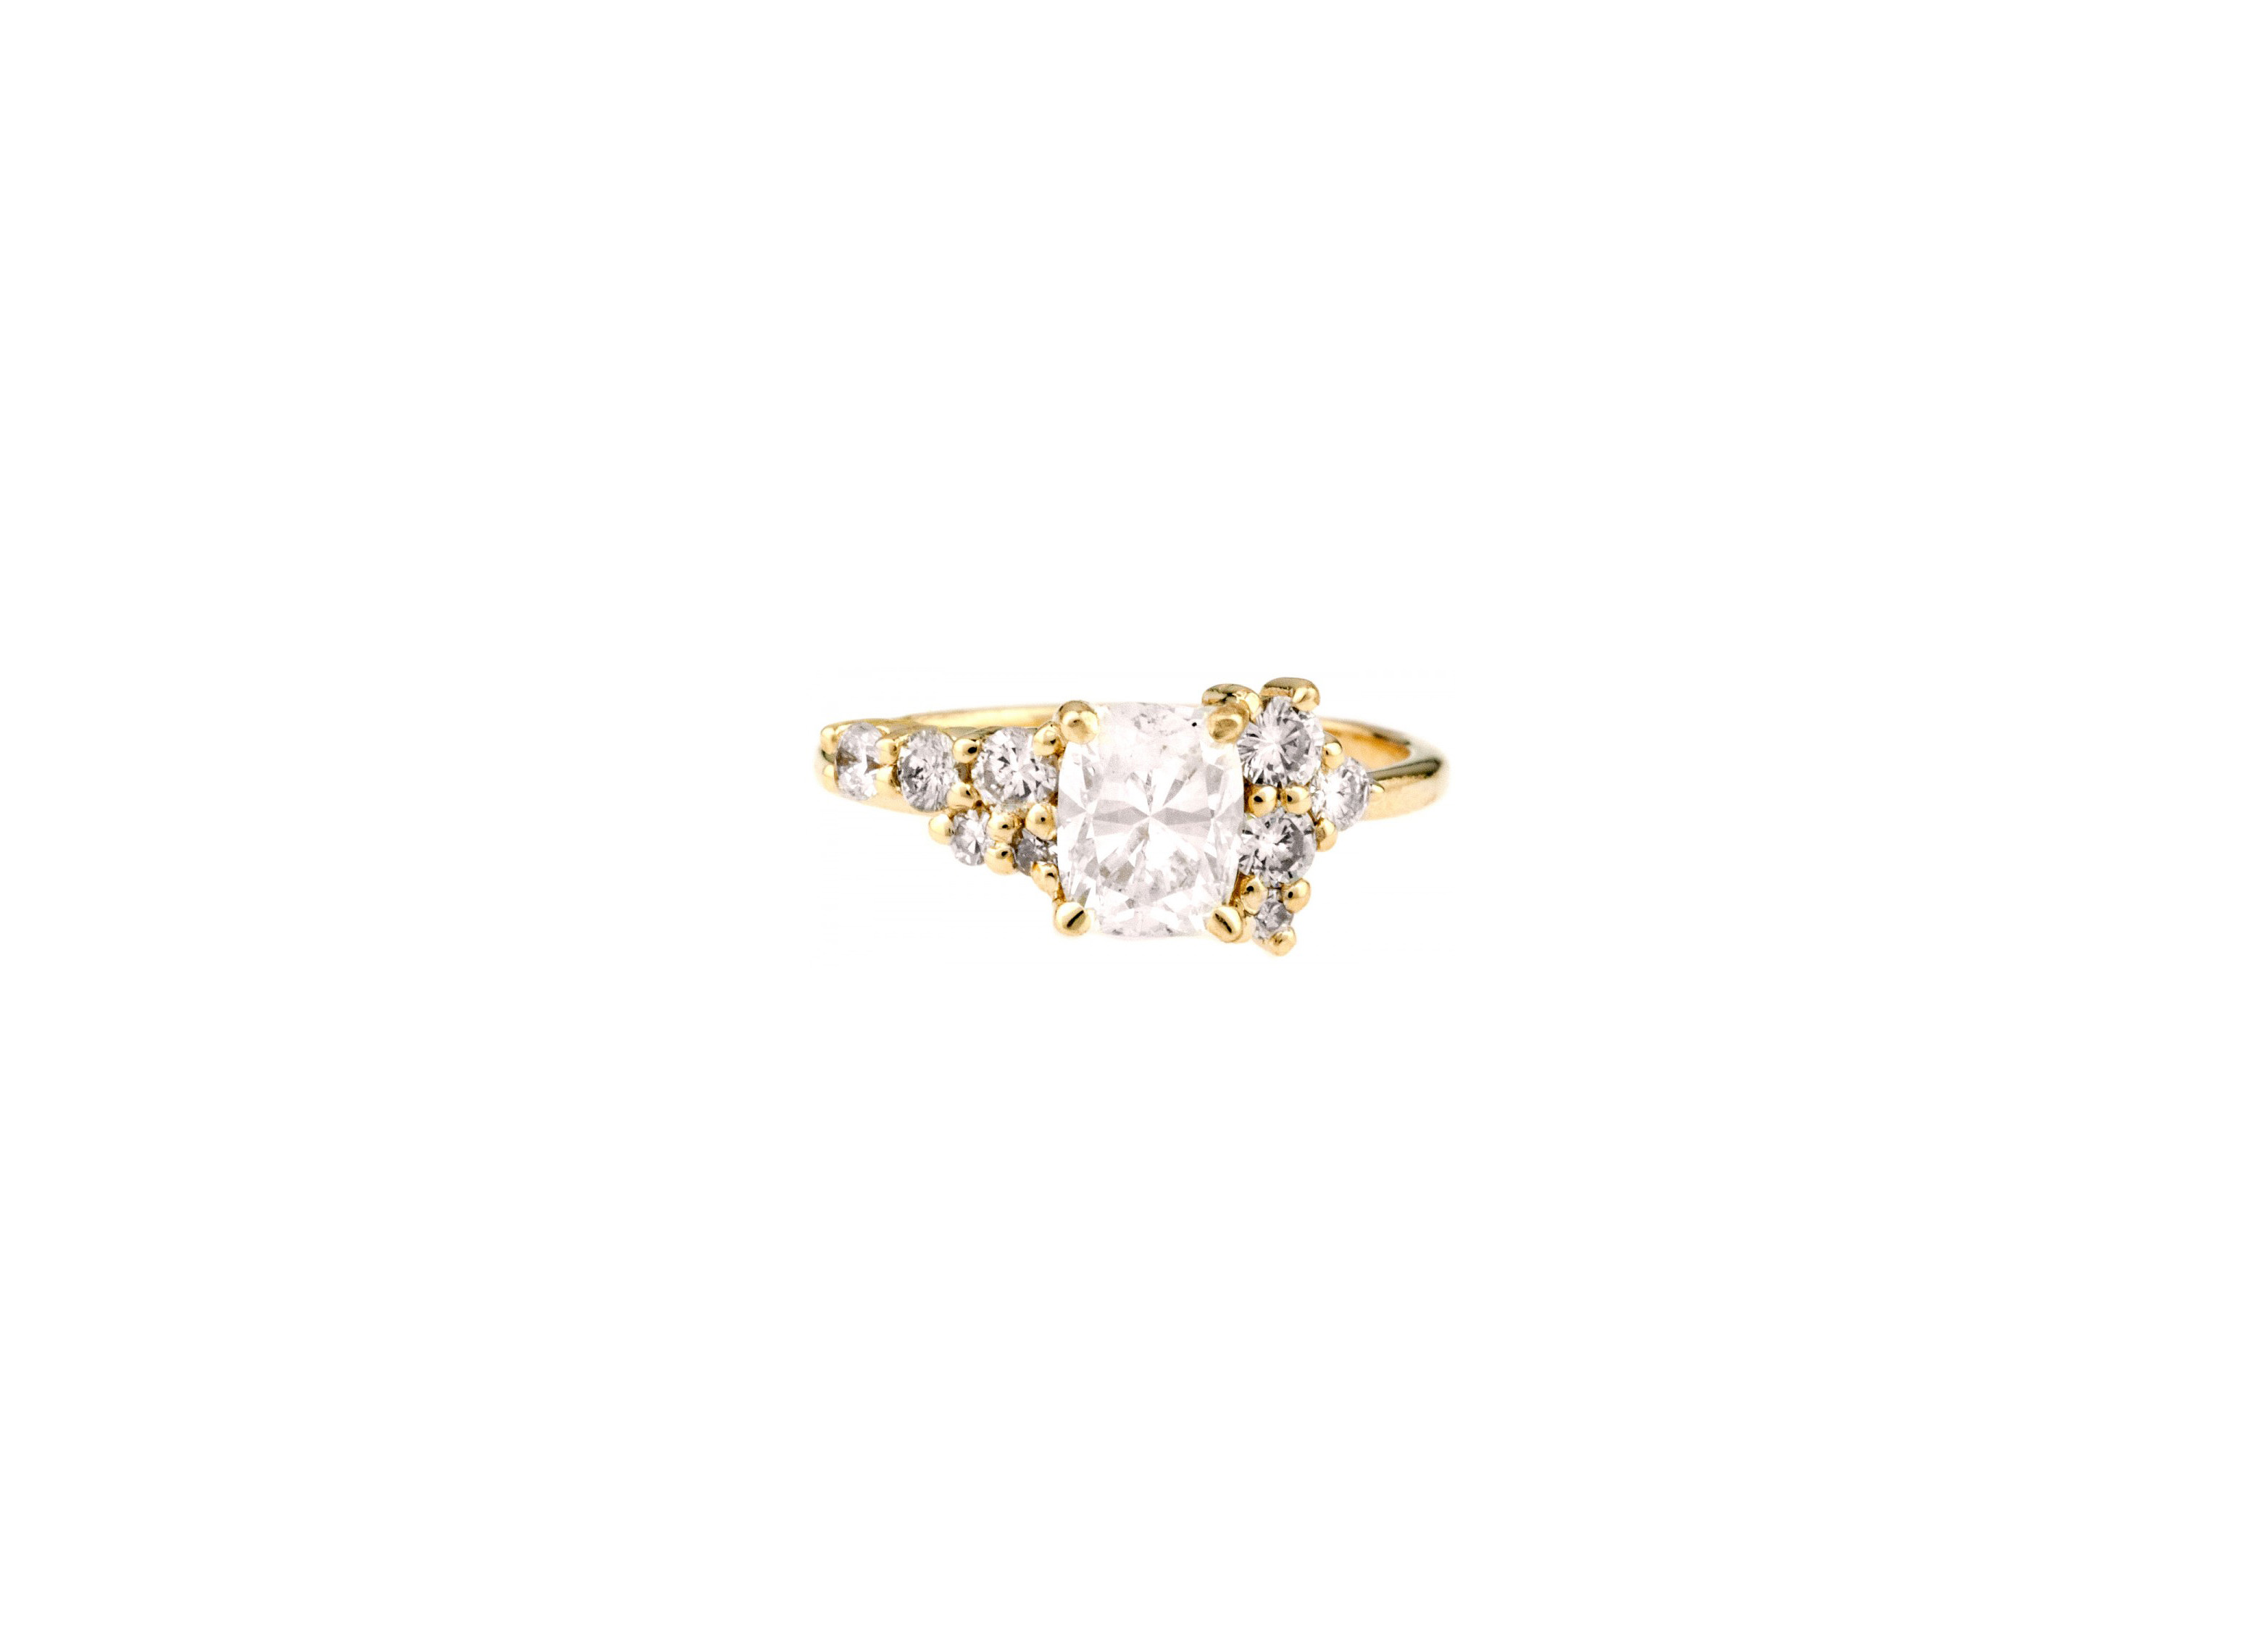 bario neal custom heirloom cushion cut diamond cluster engagement ring